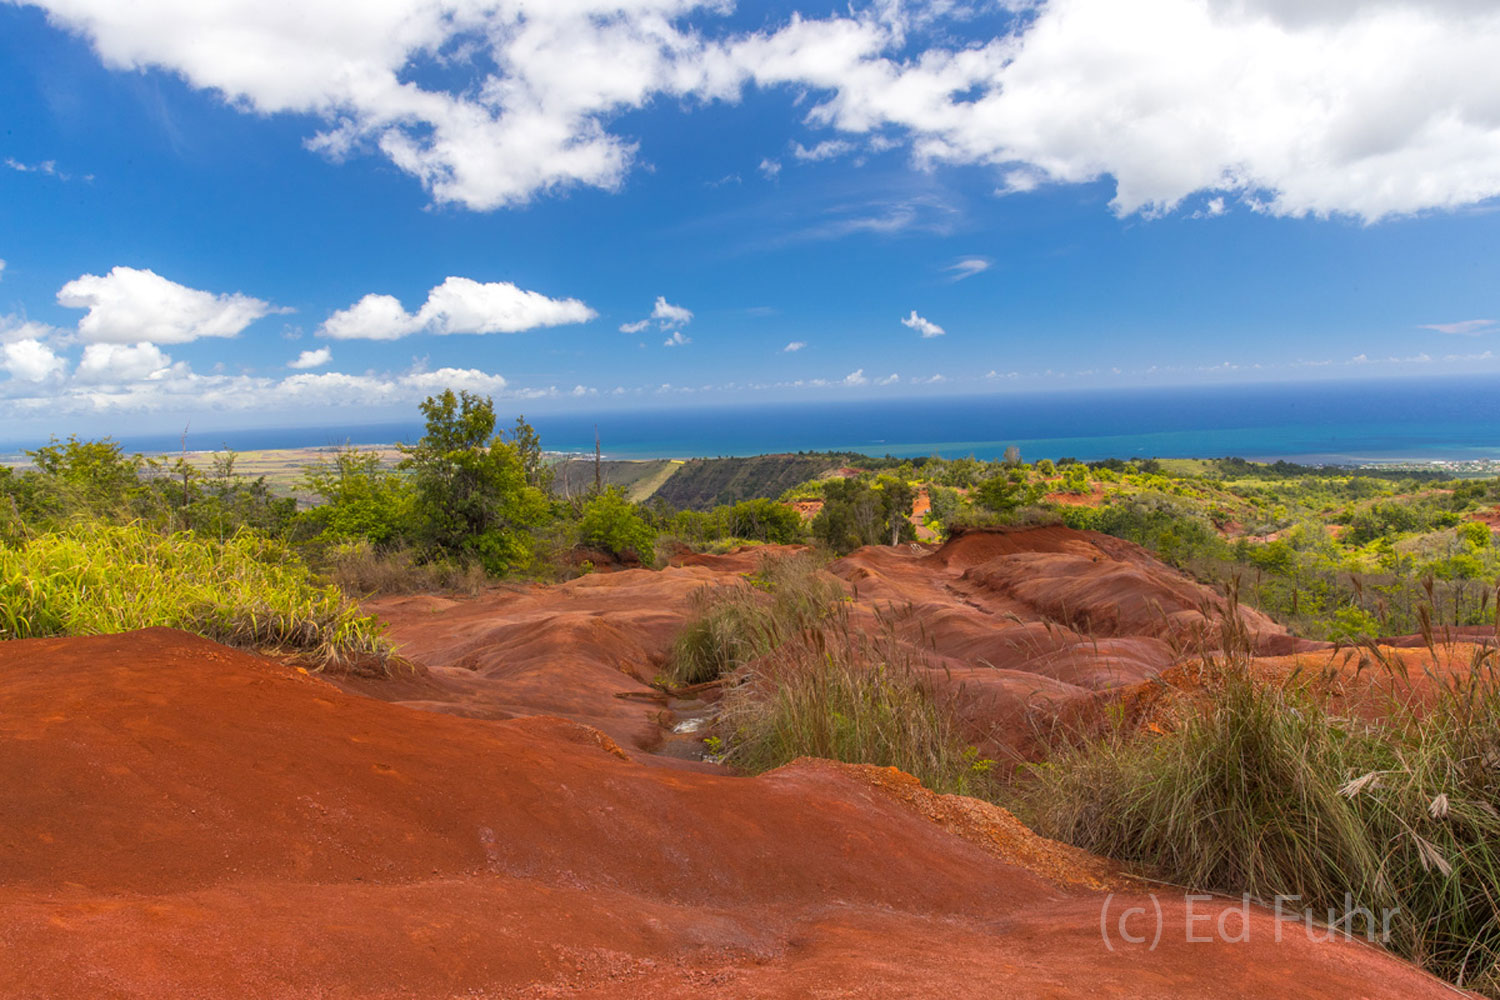 Rusted volcanic rock aged over a million creates a stunning contrast with the Pacific blue and surrounding lush vegetation.